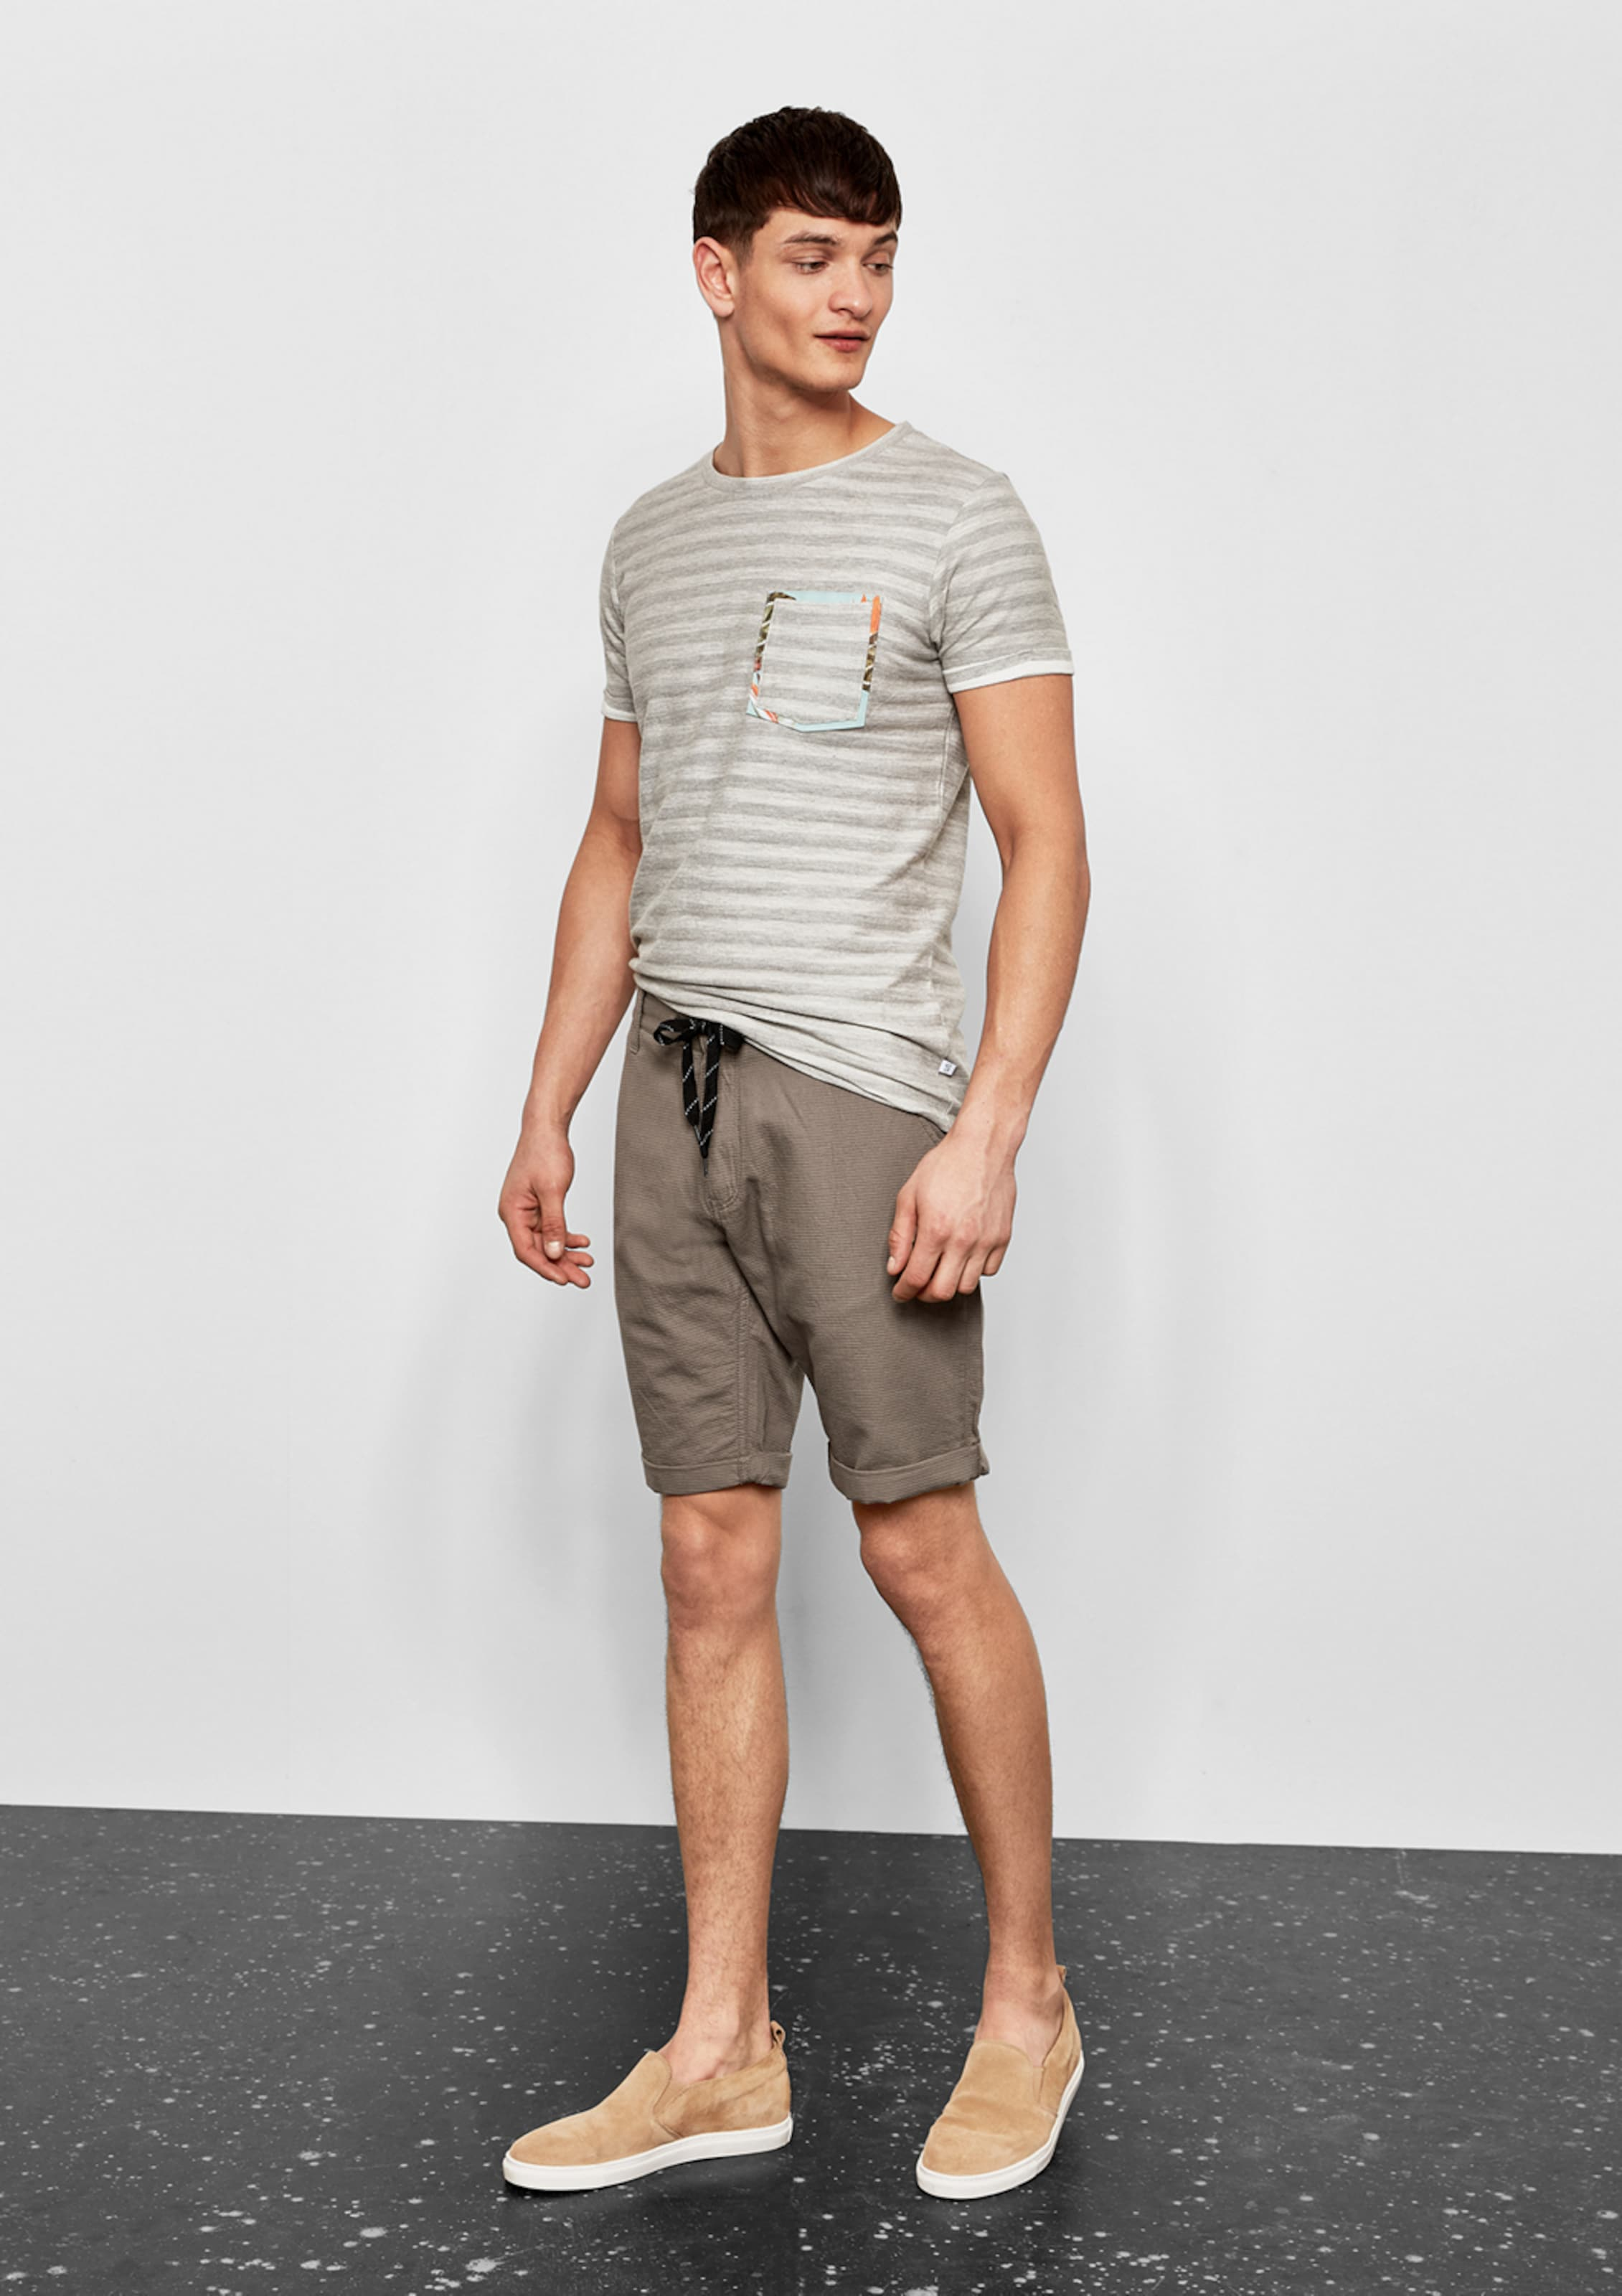 In s Designed Q Greige Shorts By zVLSUMGqp